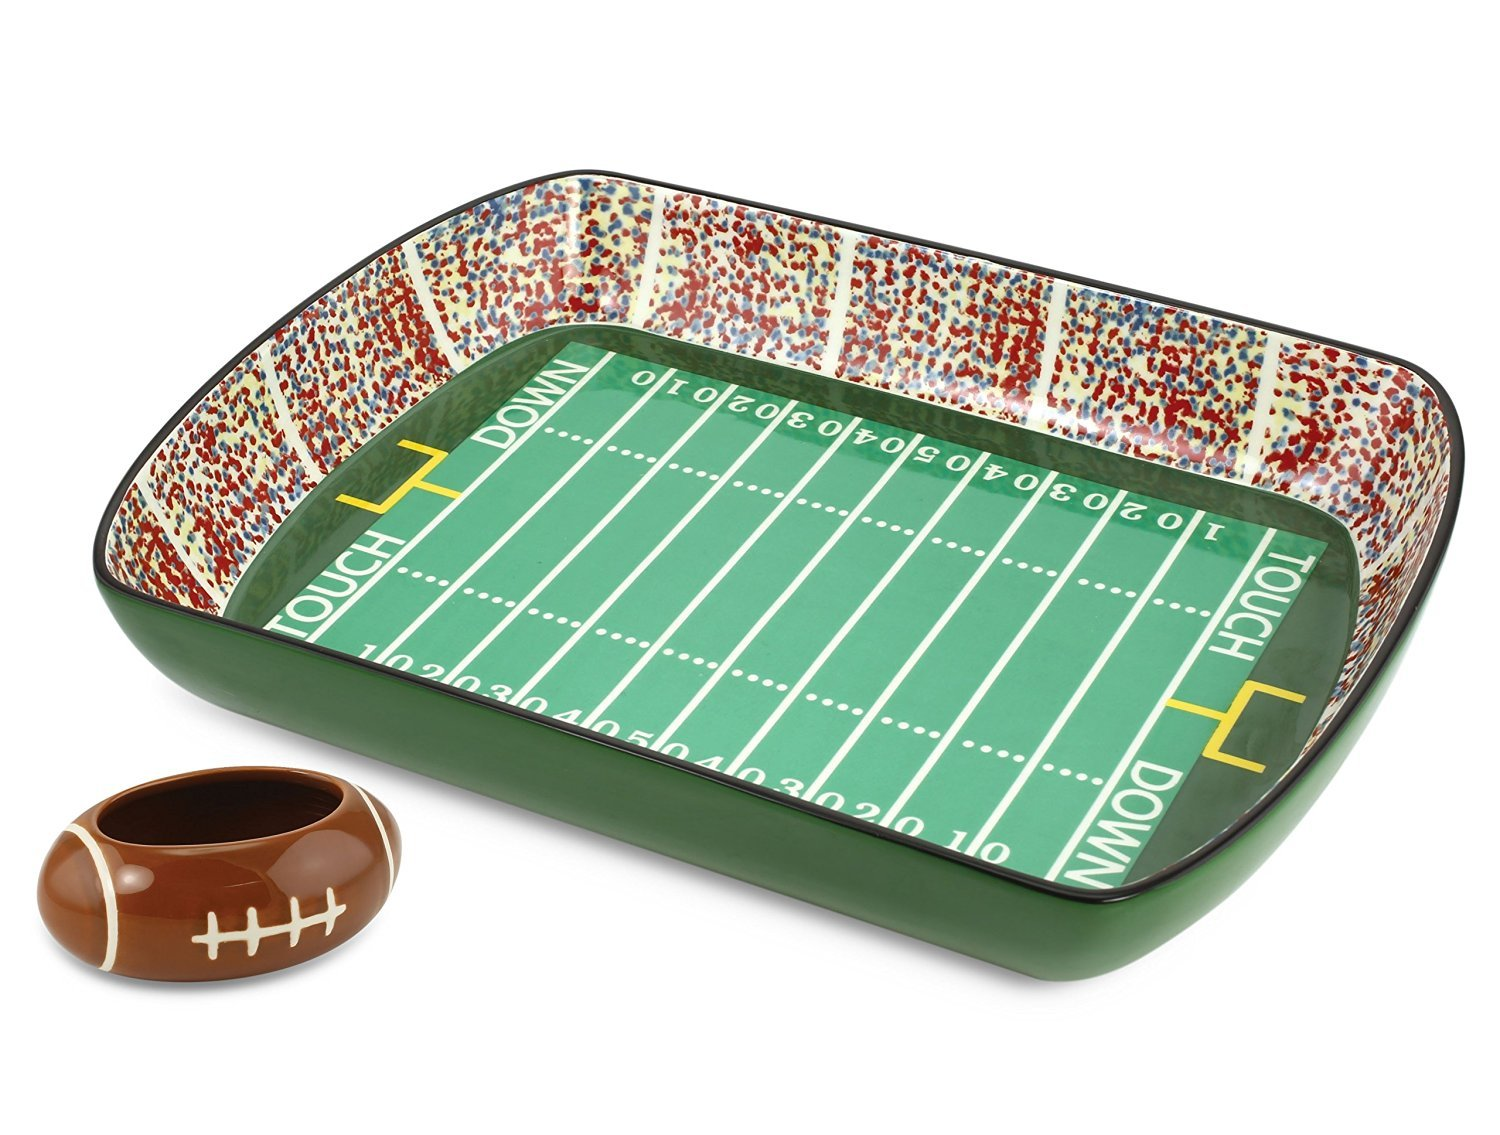 KOVOT Football Stadium Game Day Ceramic Chip and Dip Dish, Green KO-159